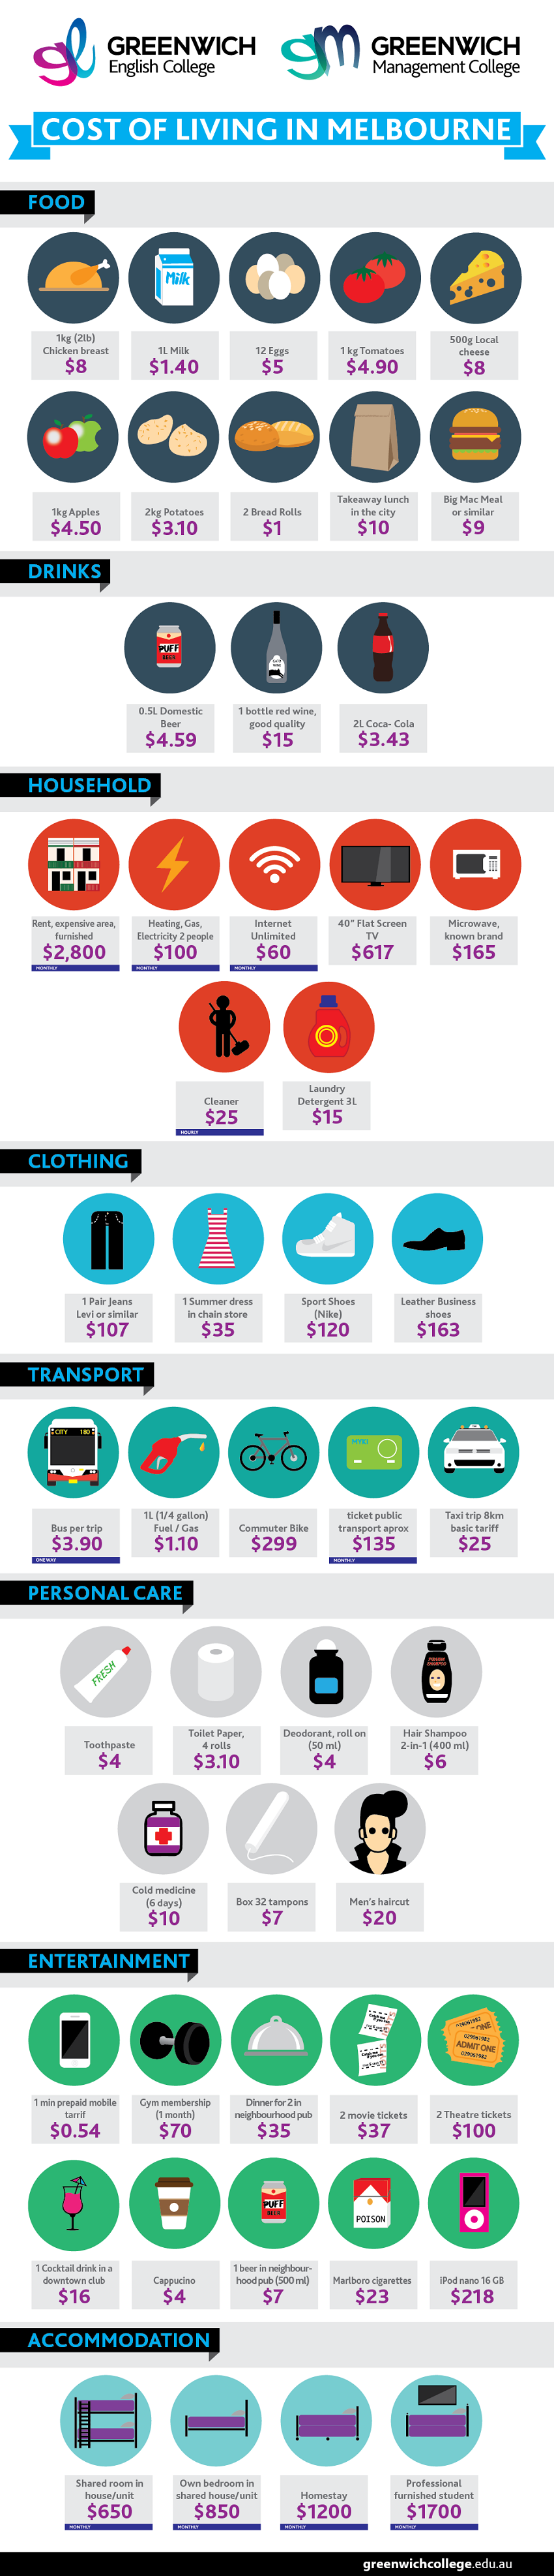 Greenwich College   Cost of Living in Melbourne